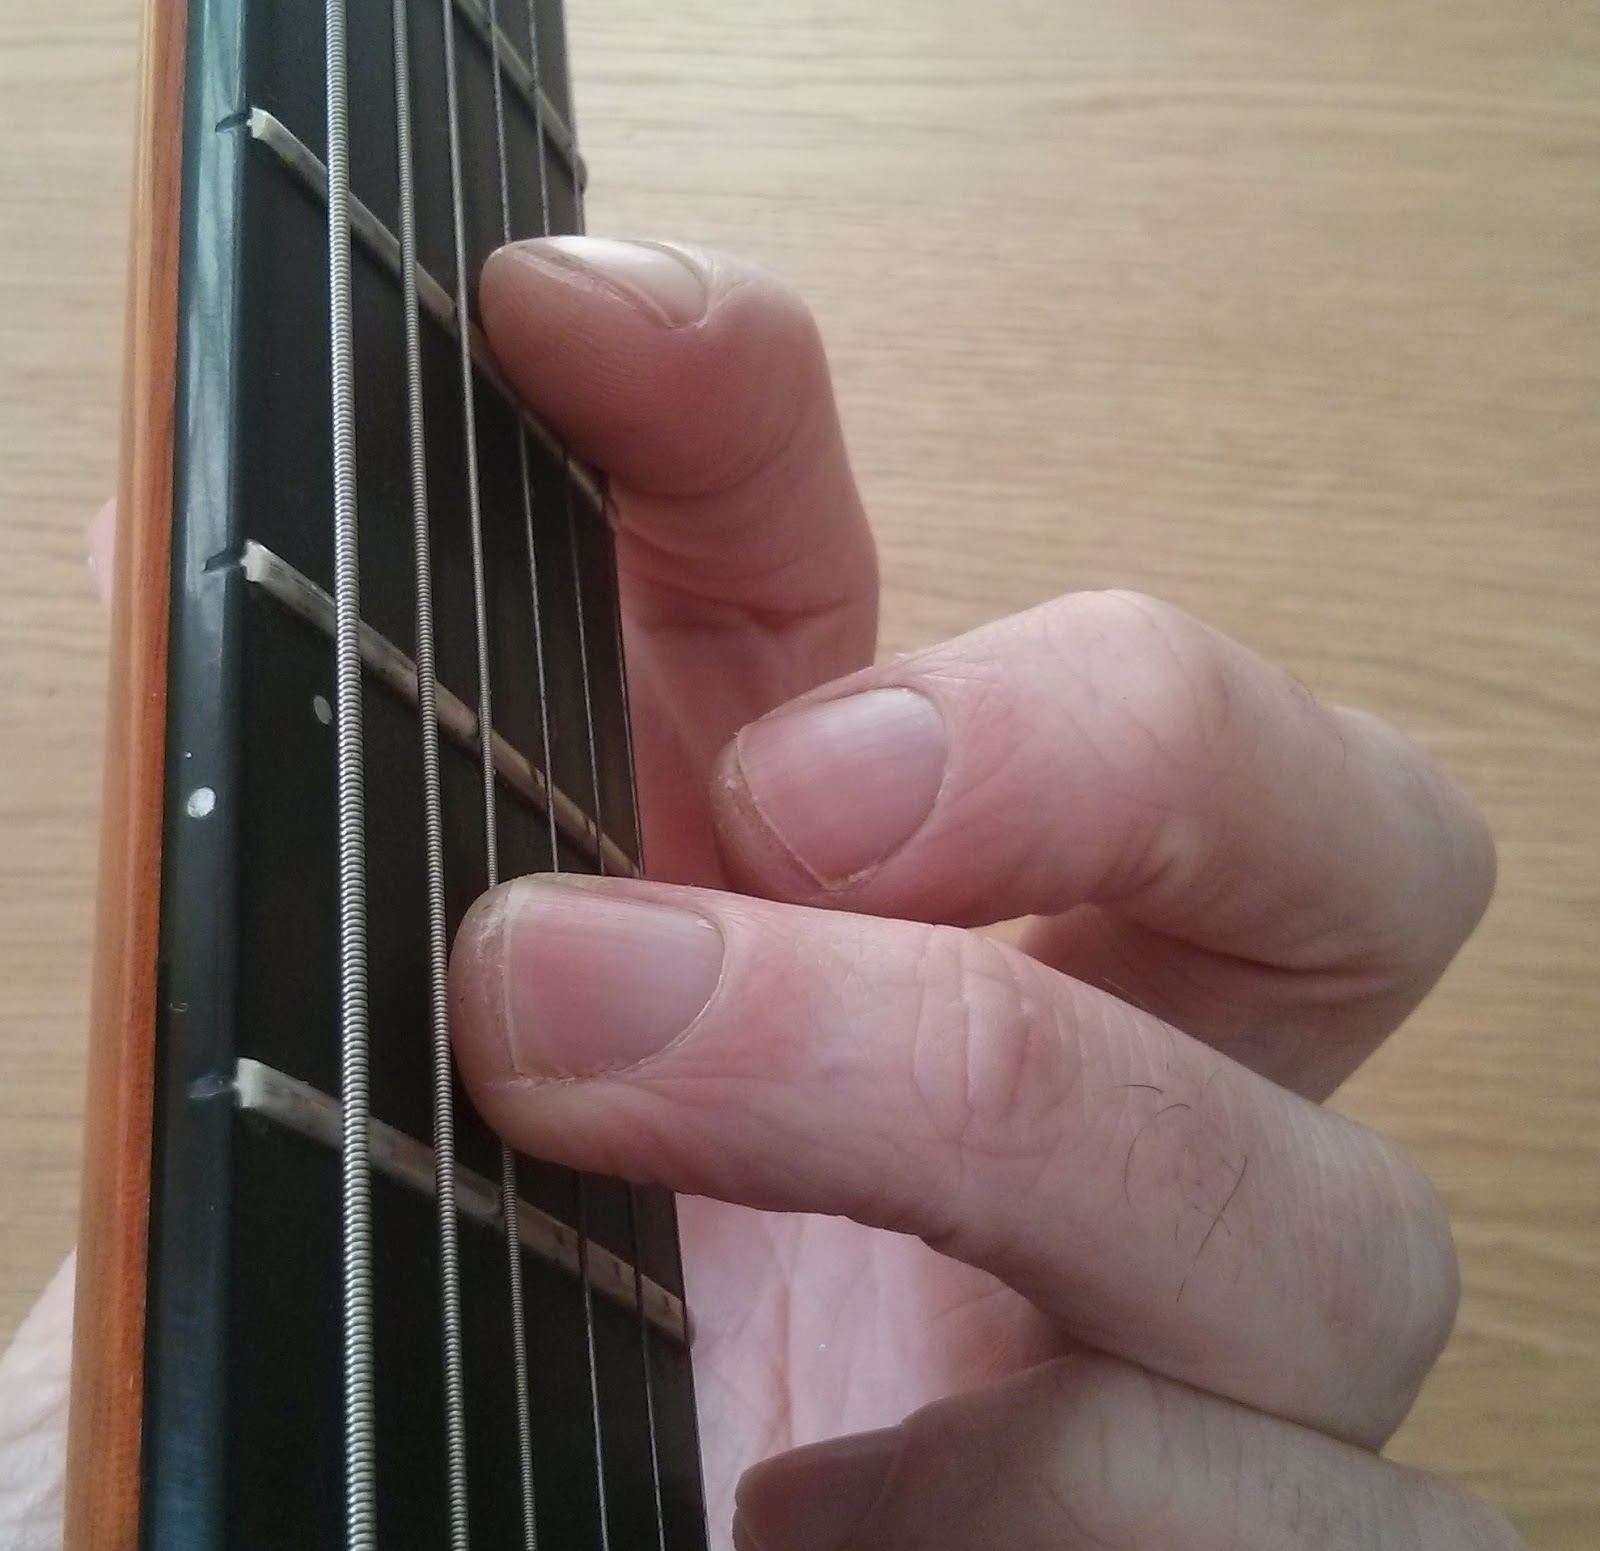 Gminor guitar chord - half barre